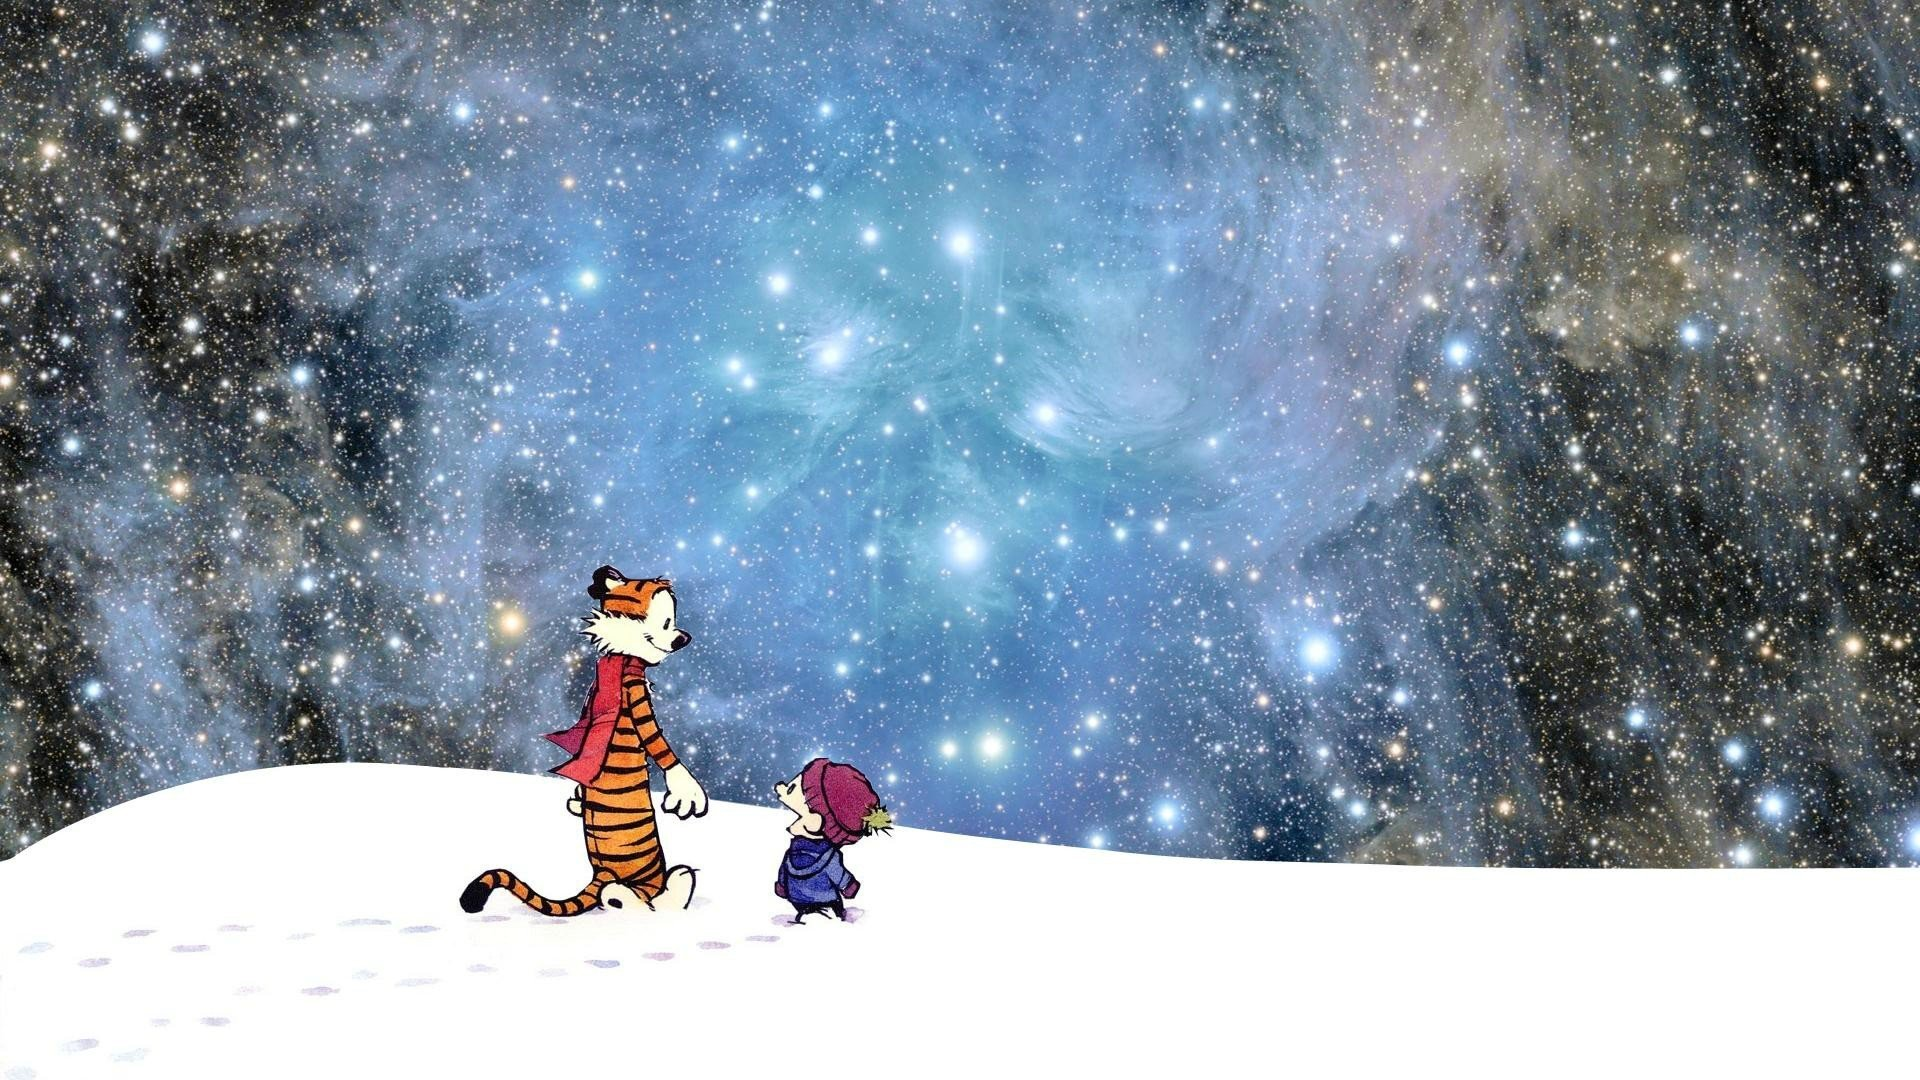 Cartoons outer space stars Calvin and Hobbes wallpaper 1920x1080